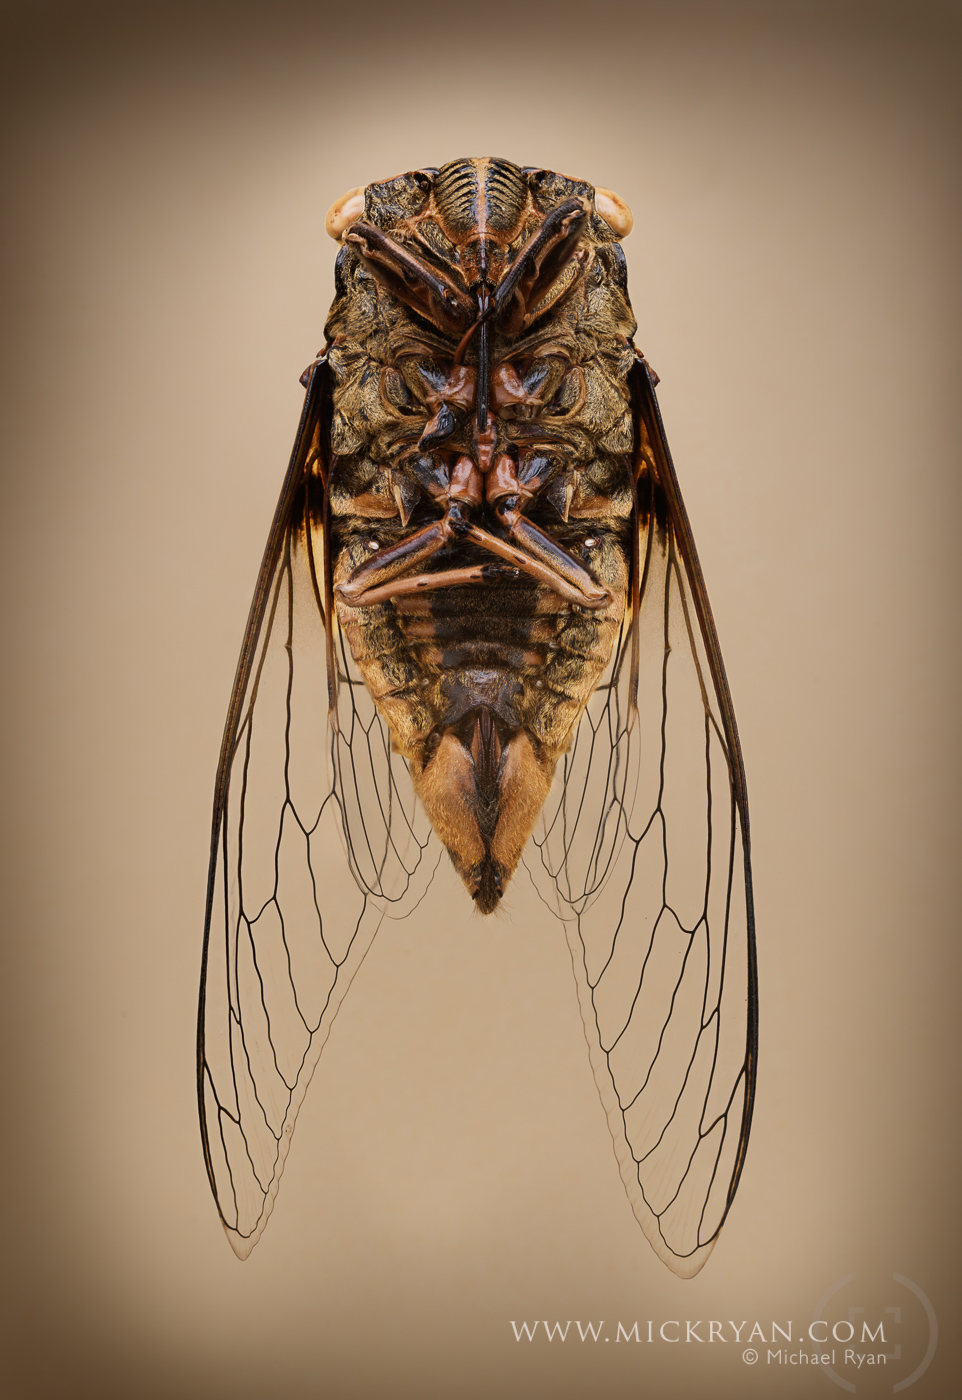 Cicada wings spread-3209-Edit.jpg